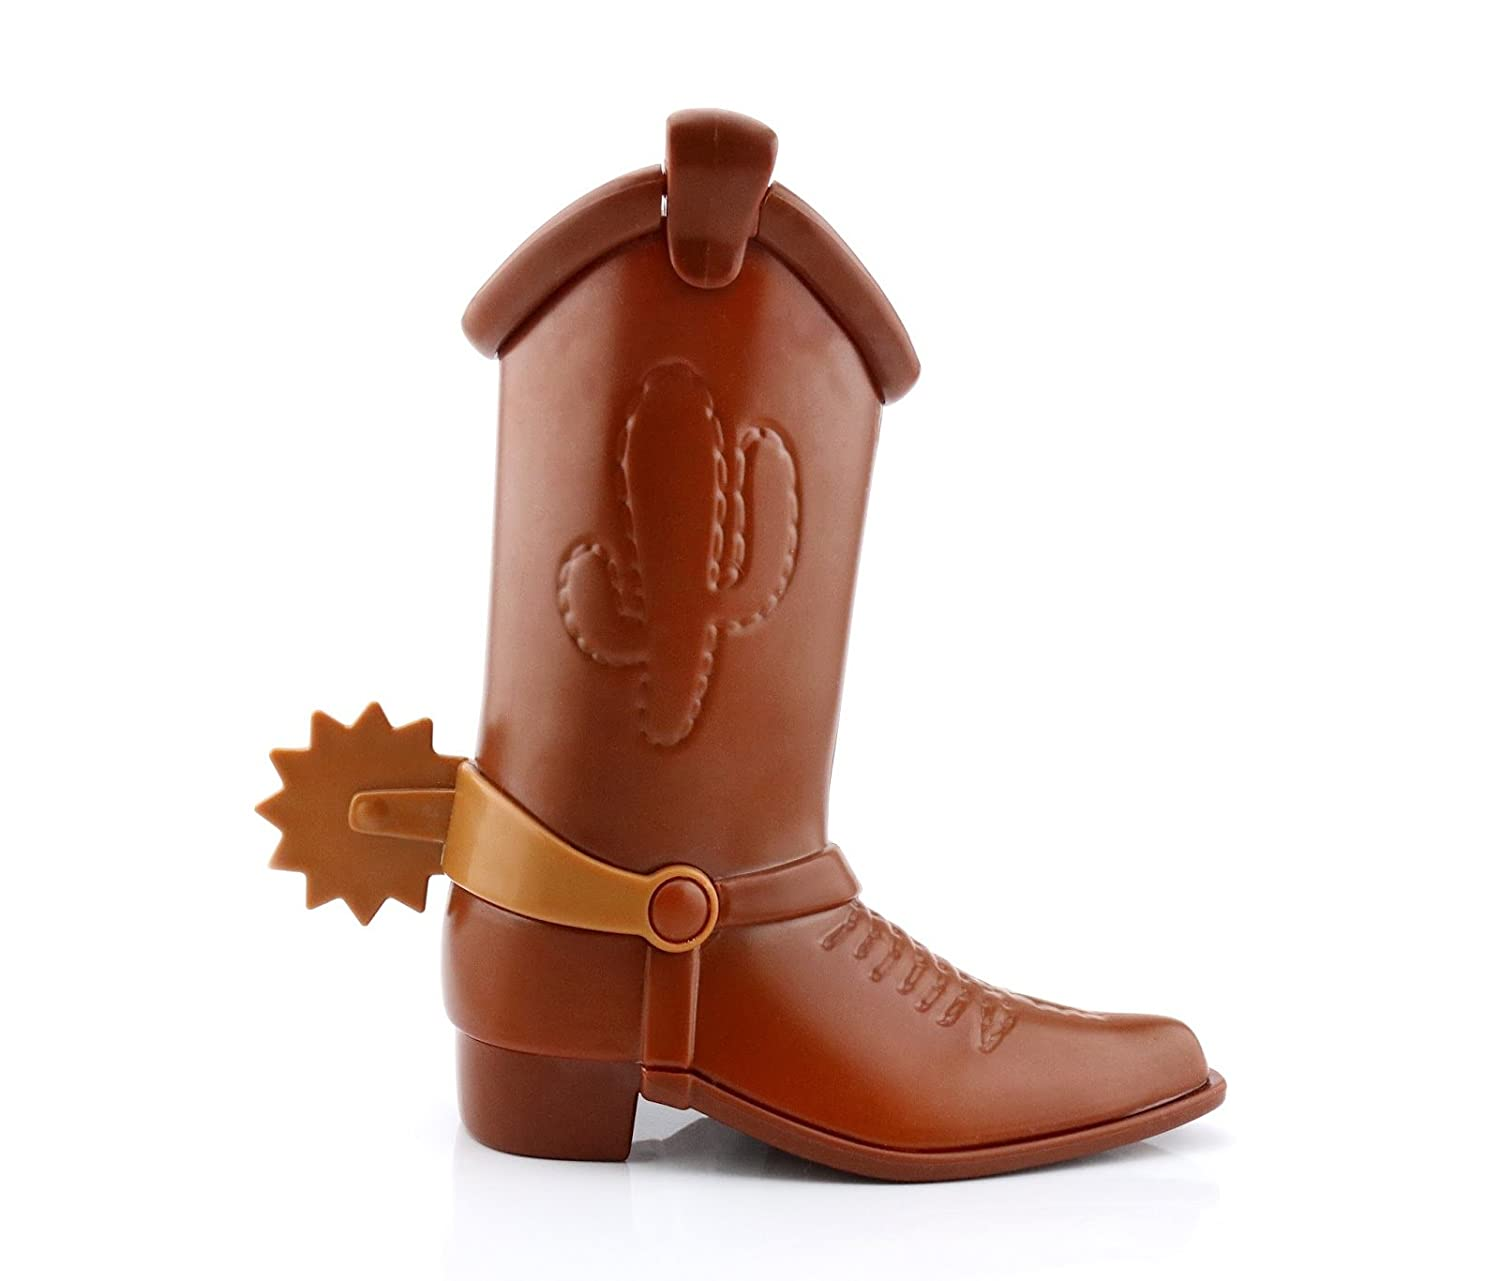 Toy Story Woody's Boot Cup